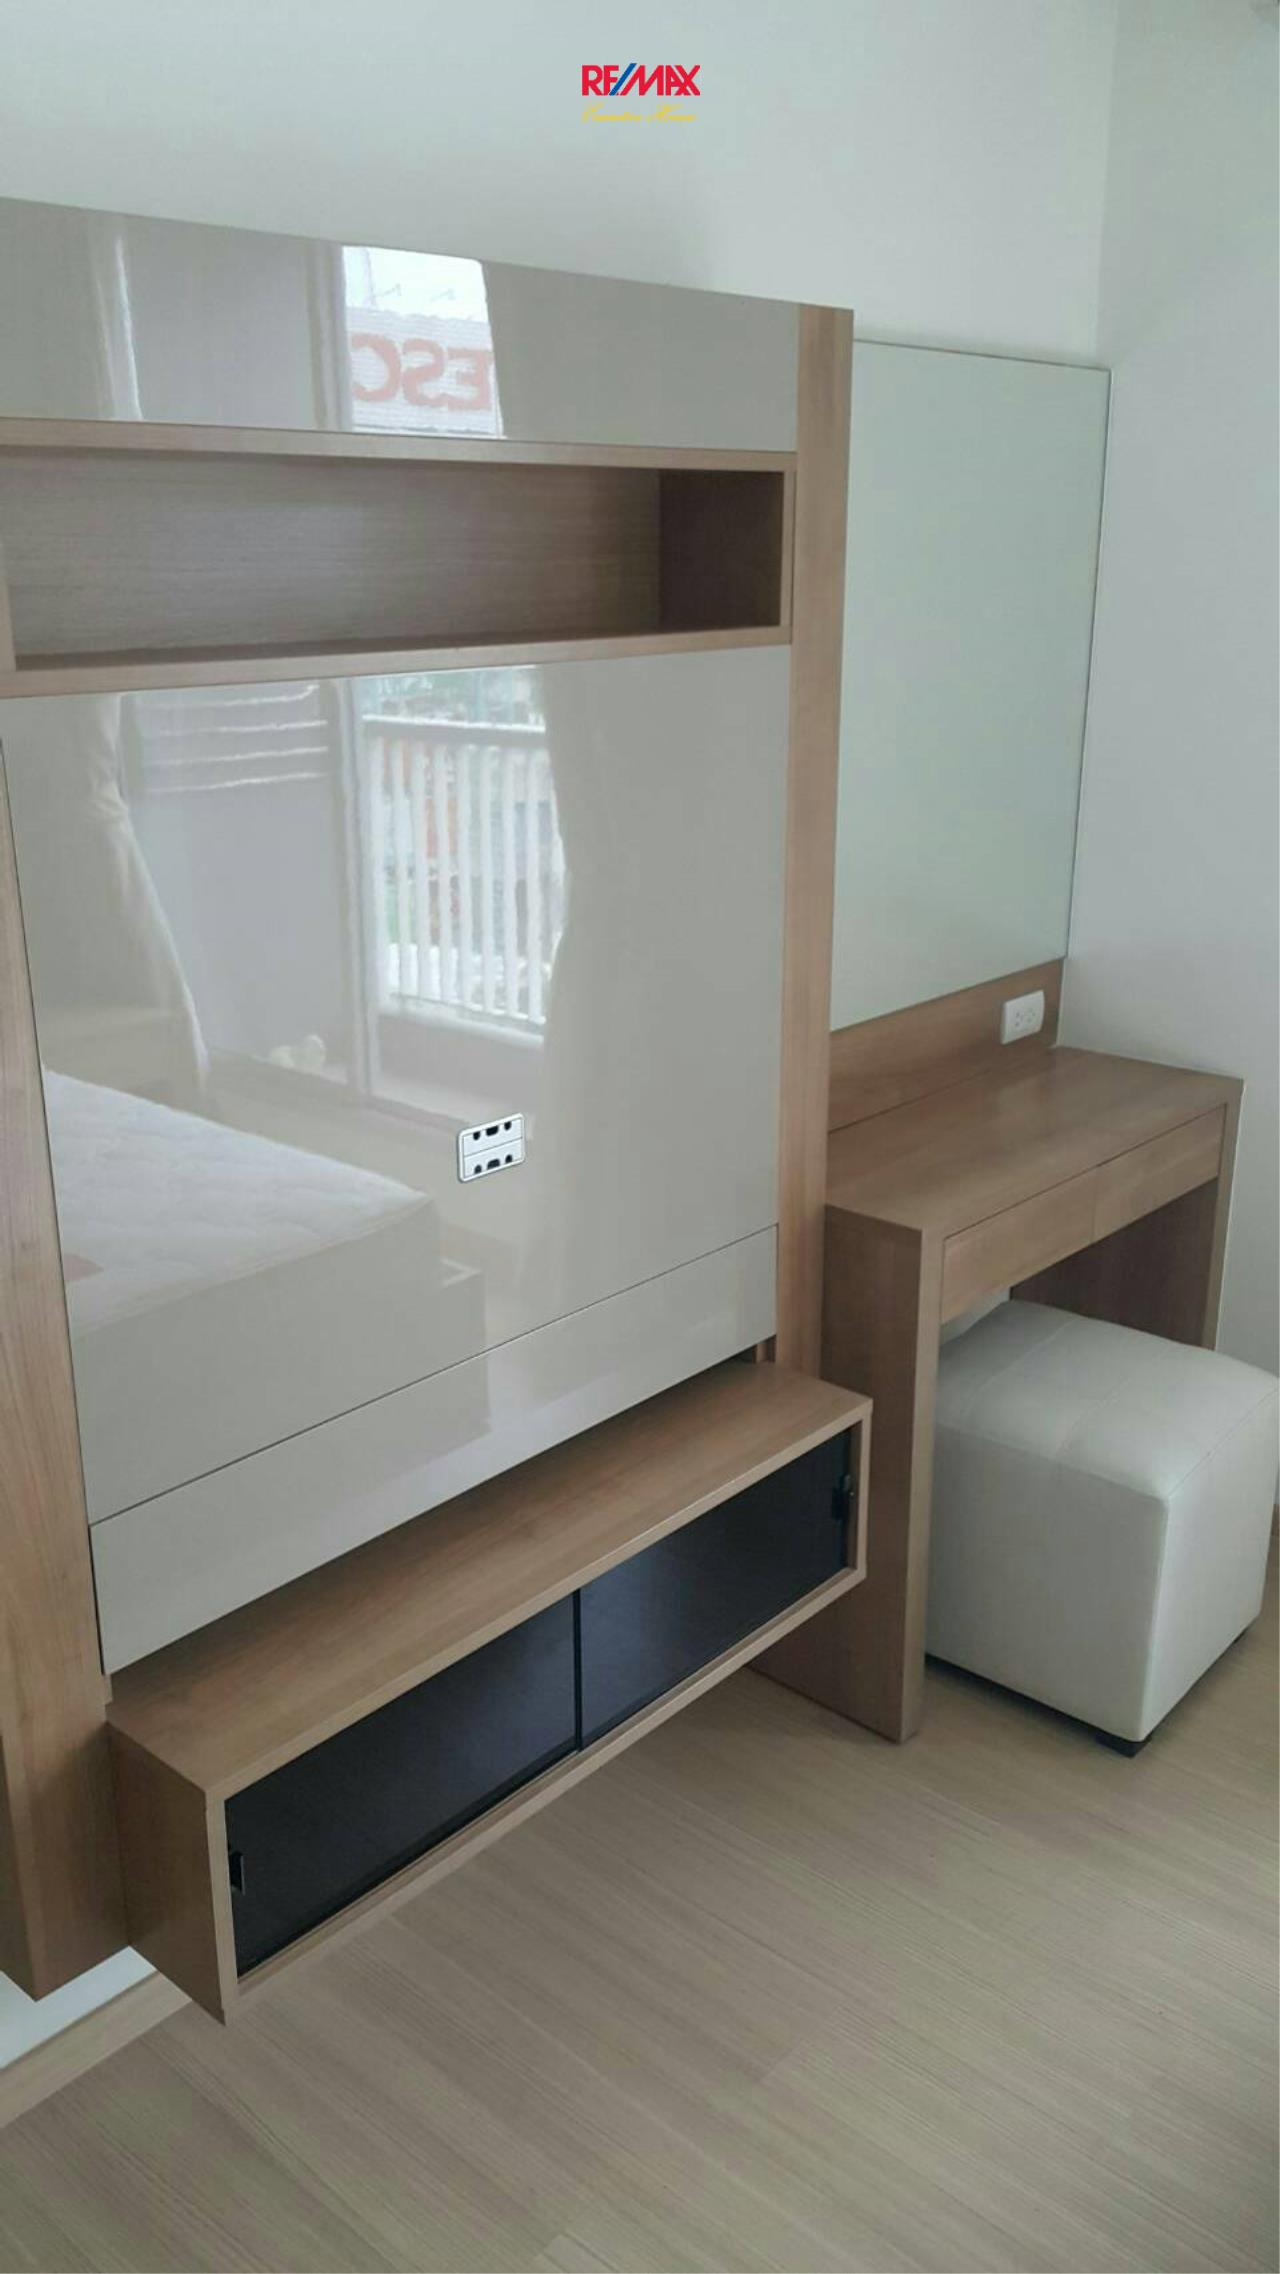 RE/MAX Executive Homes Agency's Nice 1 Bedroom for Rent Rhythm 50 5